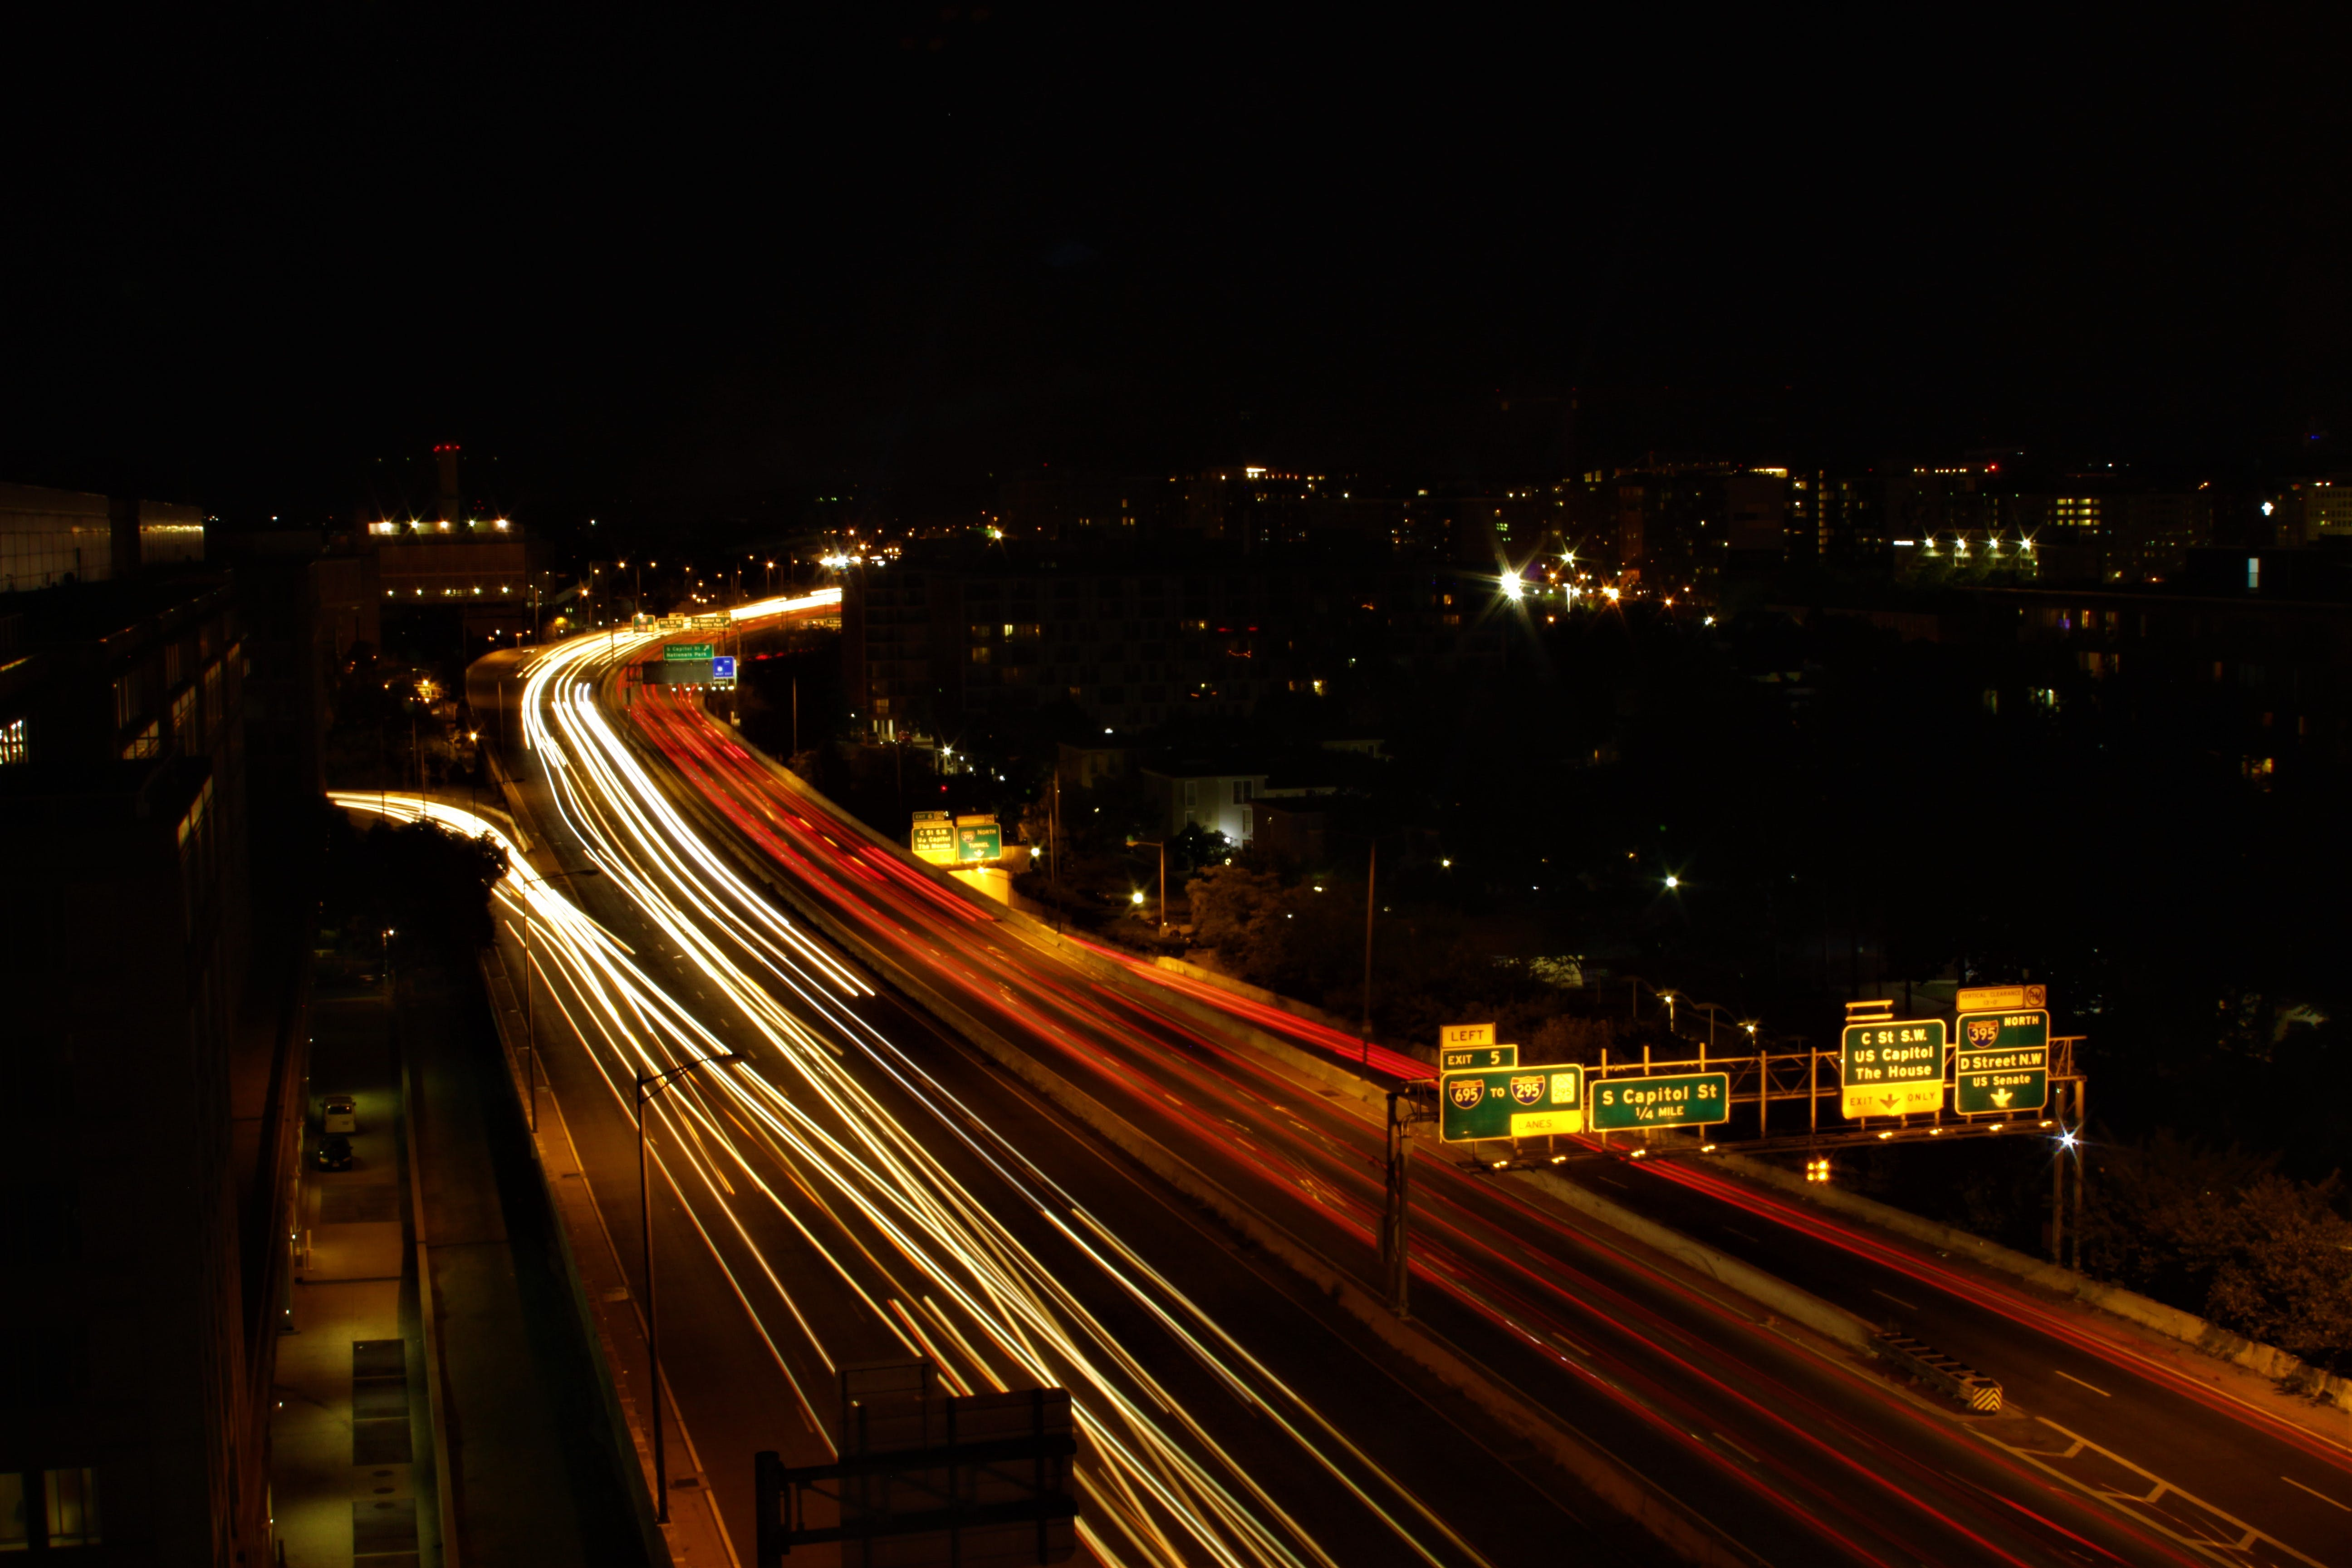 Panning Photography of Vehicles on Road at Night